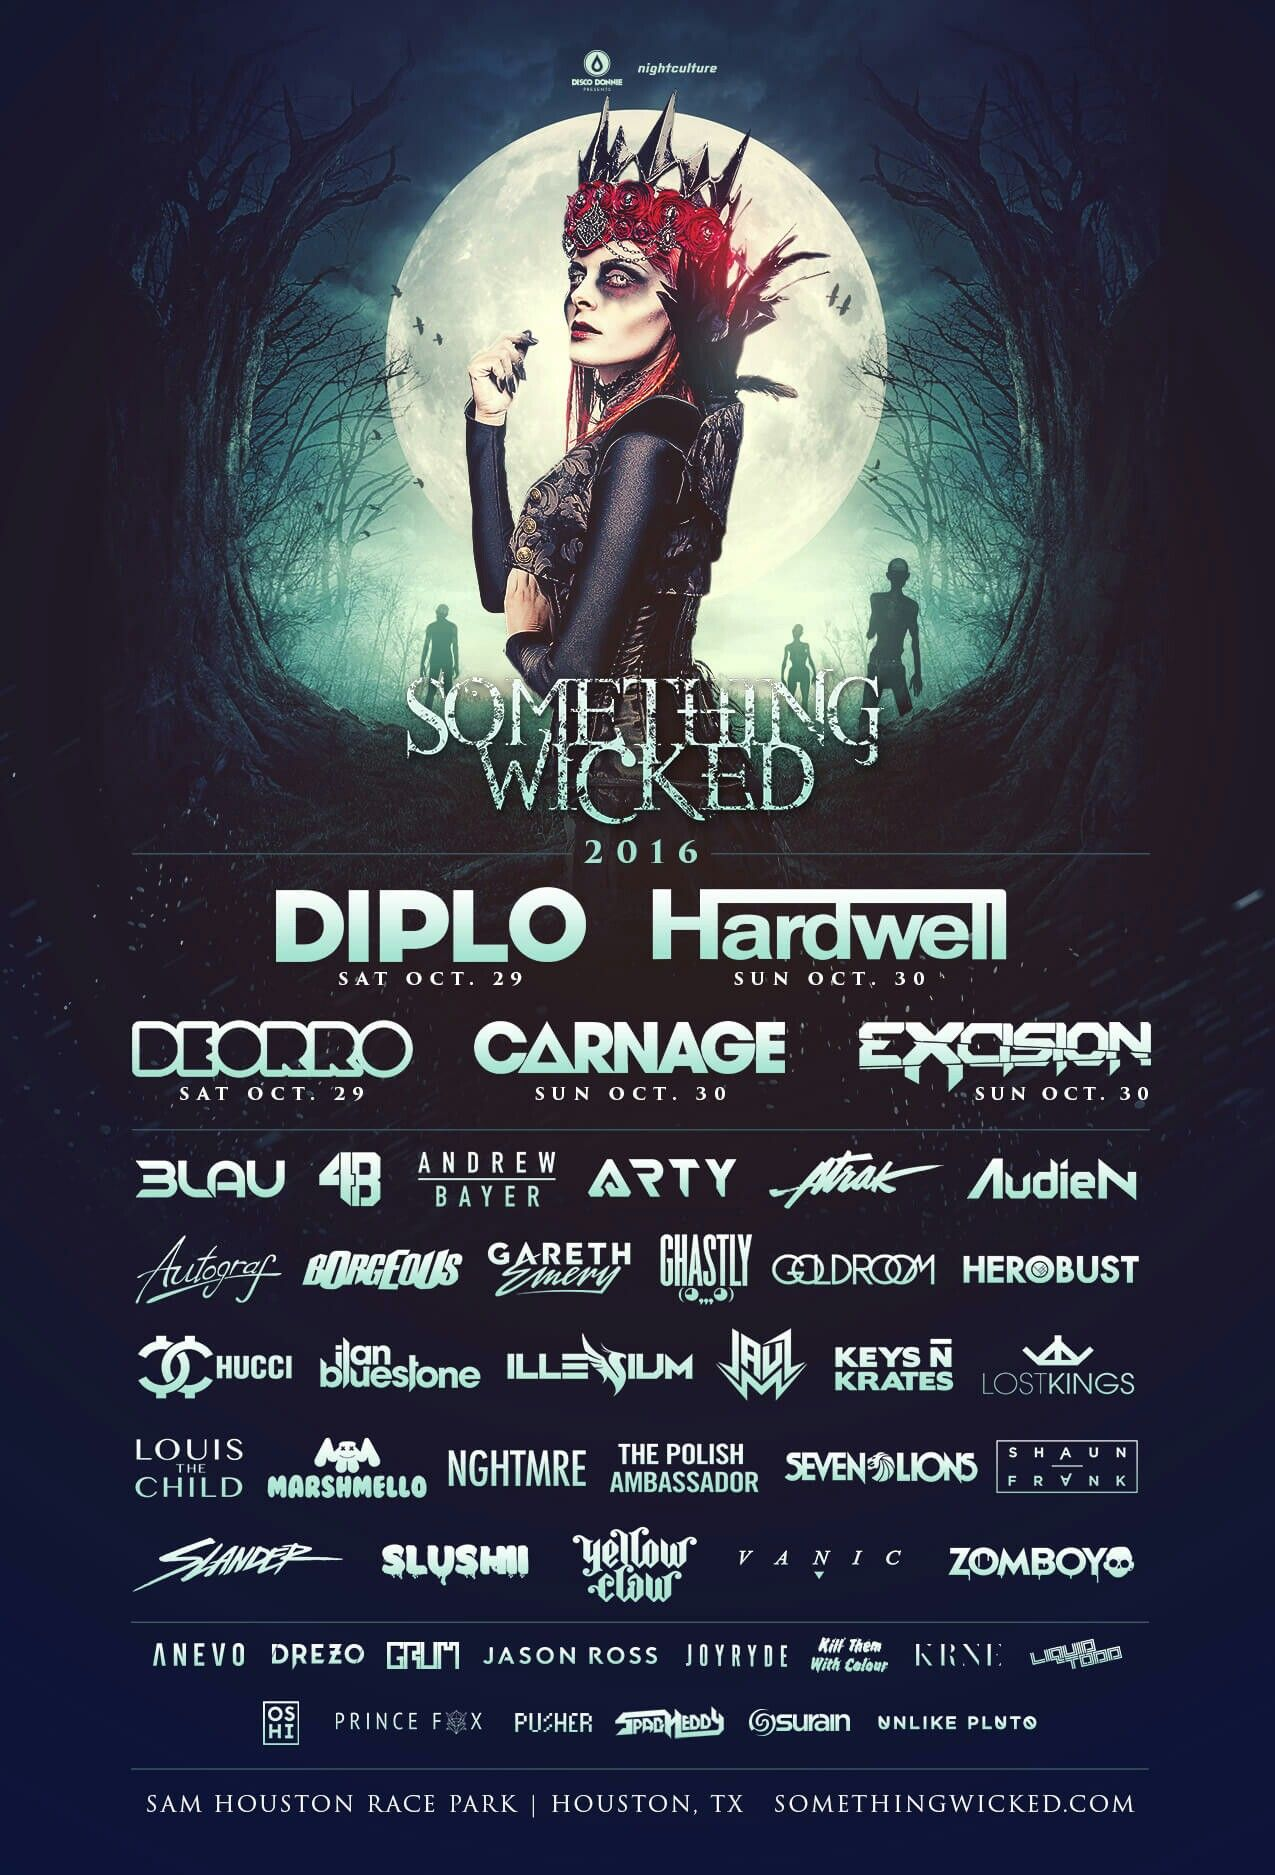 #somethingwicked Oct 29/30